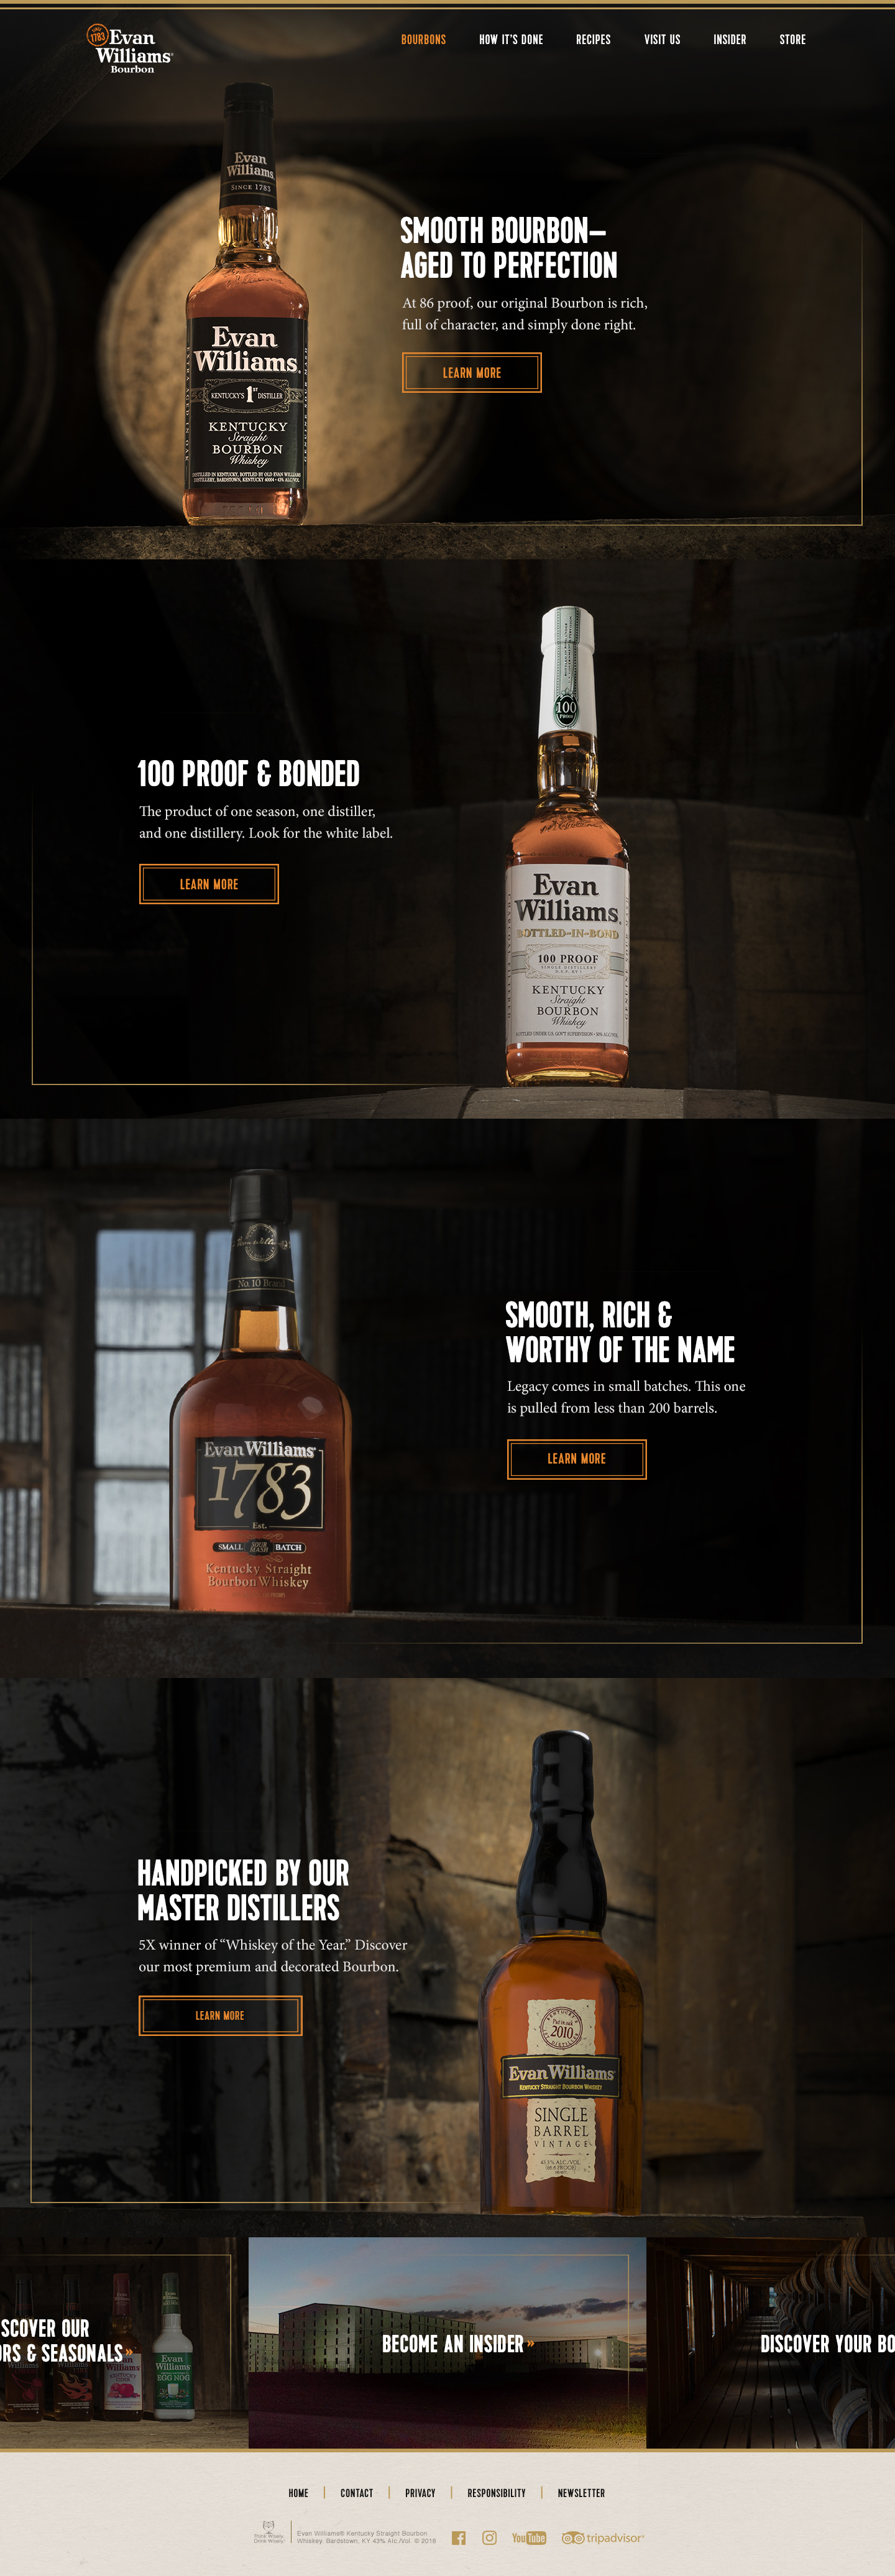 EWB_2018-Redesign_Straight-Bourbons_Desktop_1920